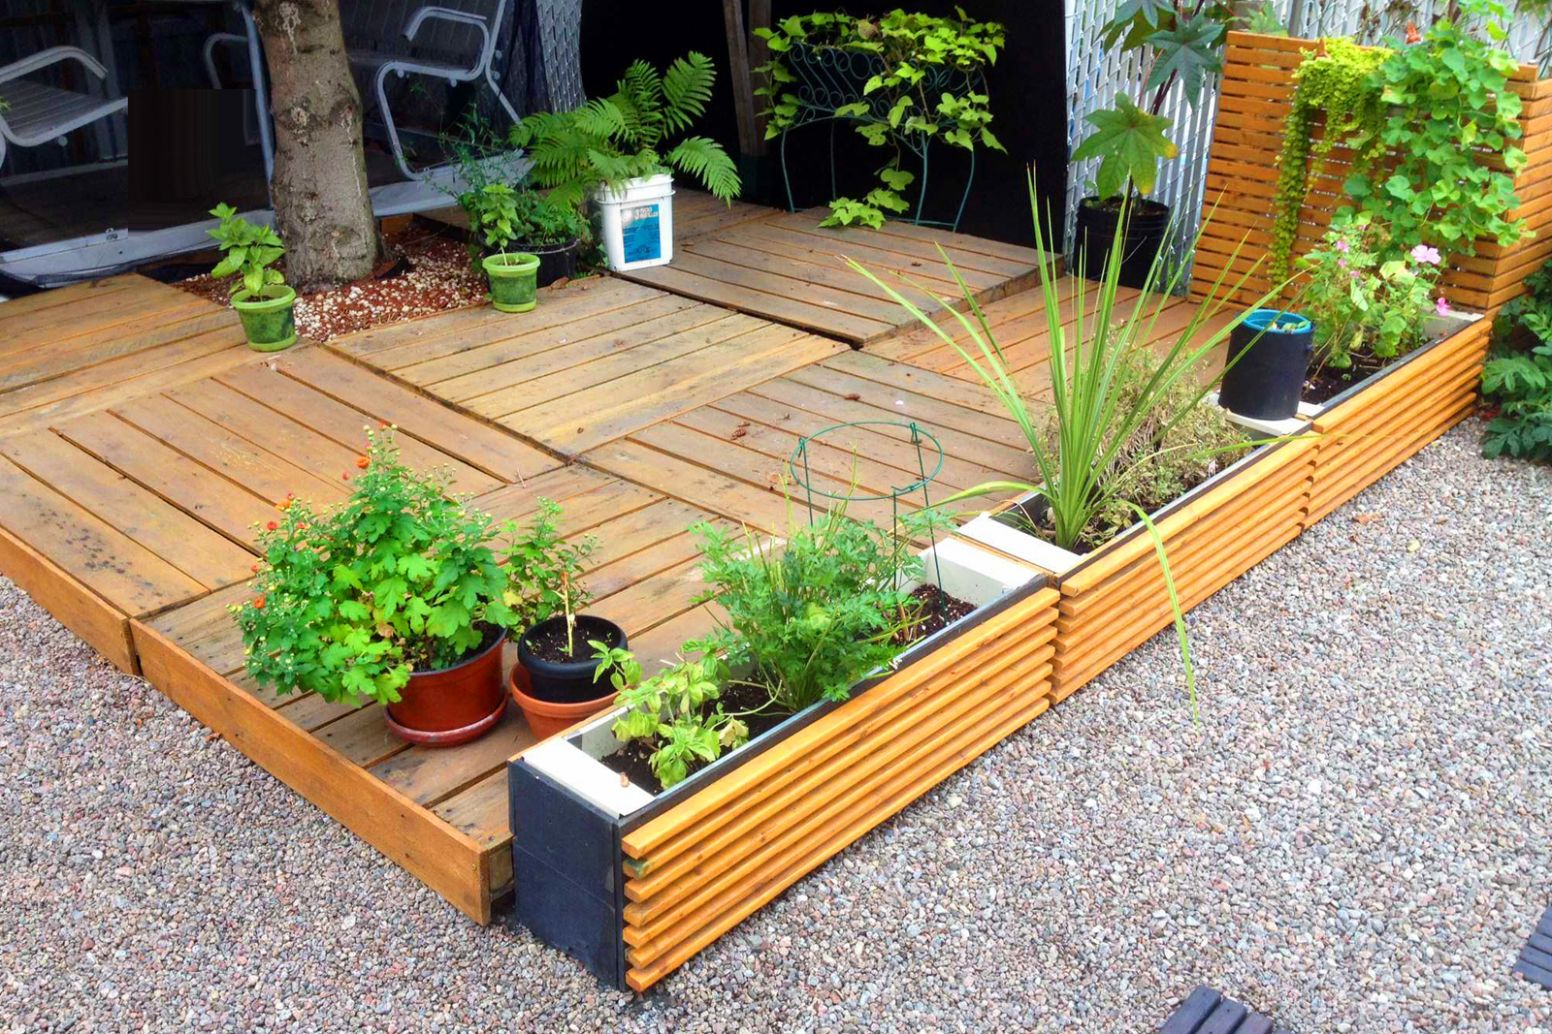 9 Simple And Easy Landscaping Ideas | HouseLogic - backyard ideas easy